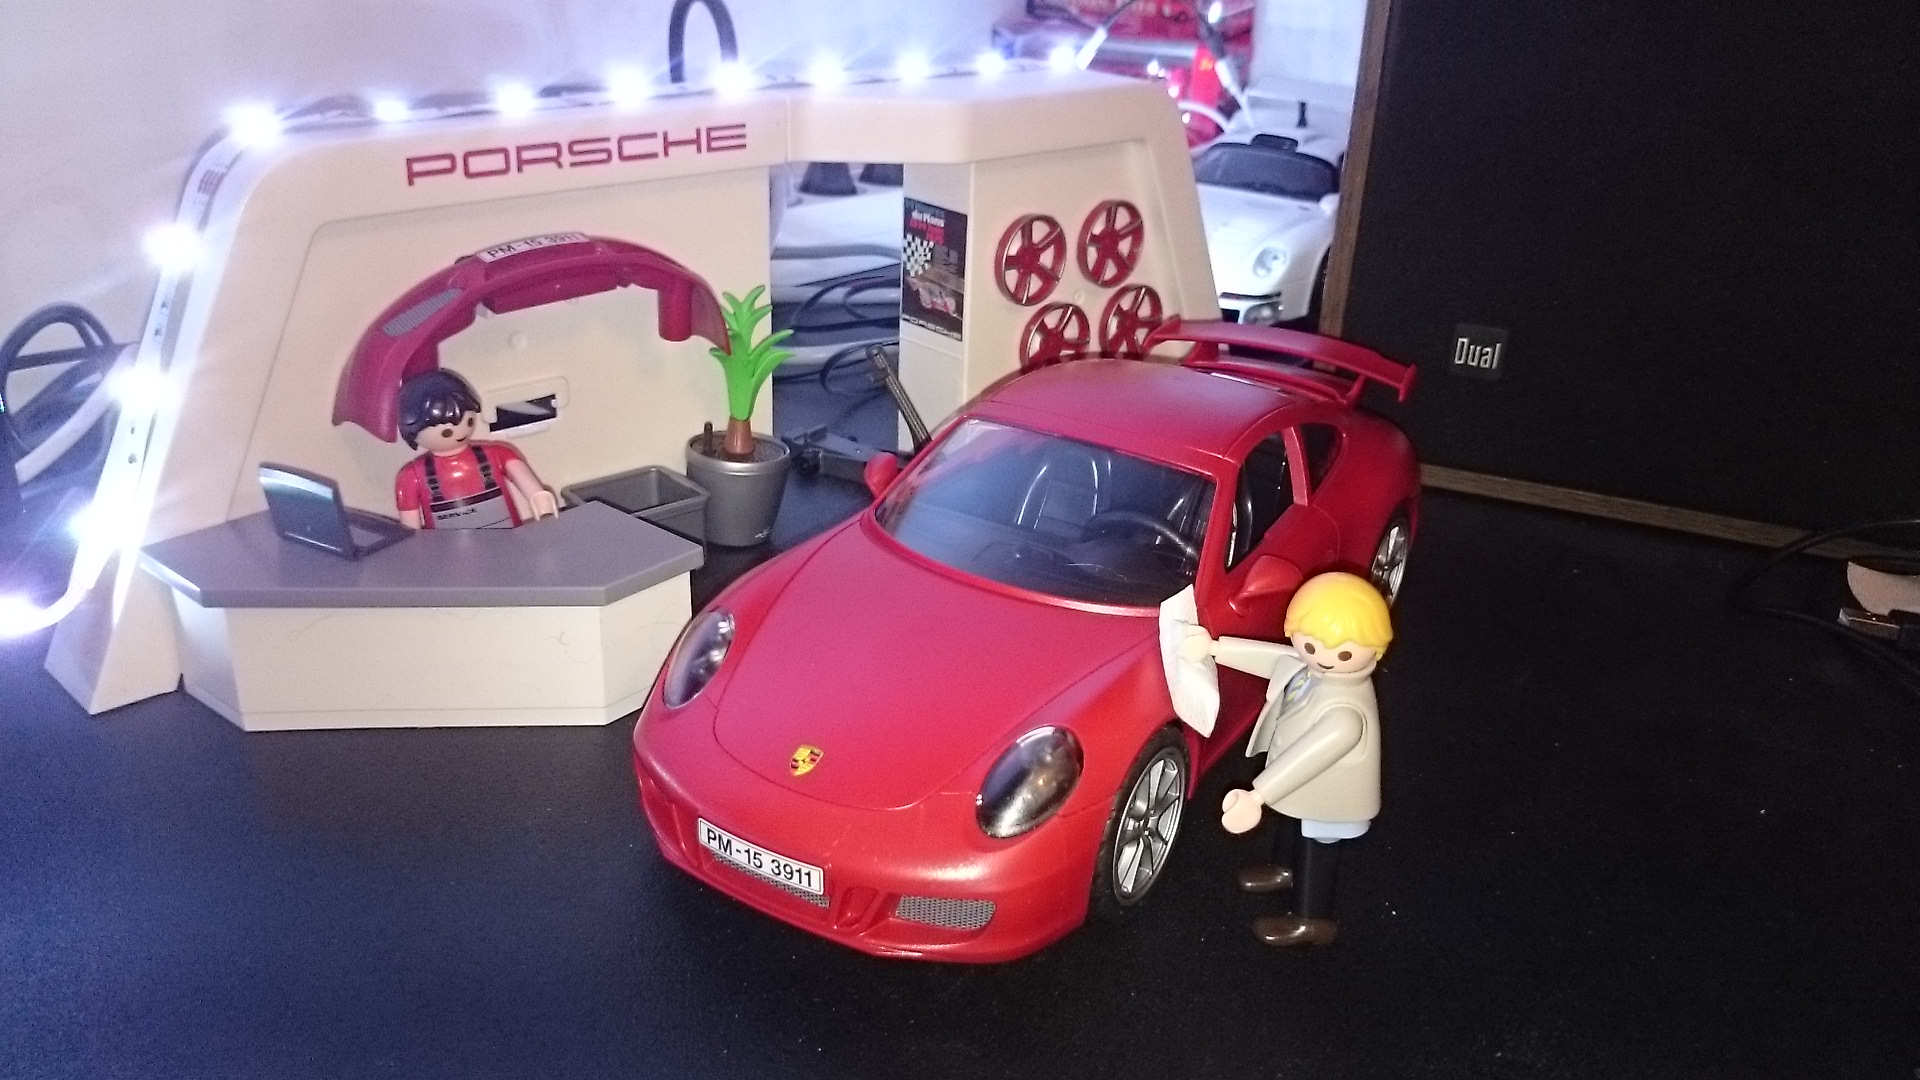 porsche playmobil d j re u le bar des porschistes boxster cayman 911 porsche. Black Bedroom Furniture Sets. Home Design Ideas